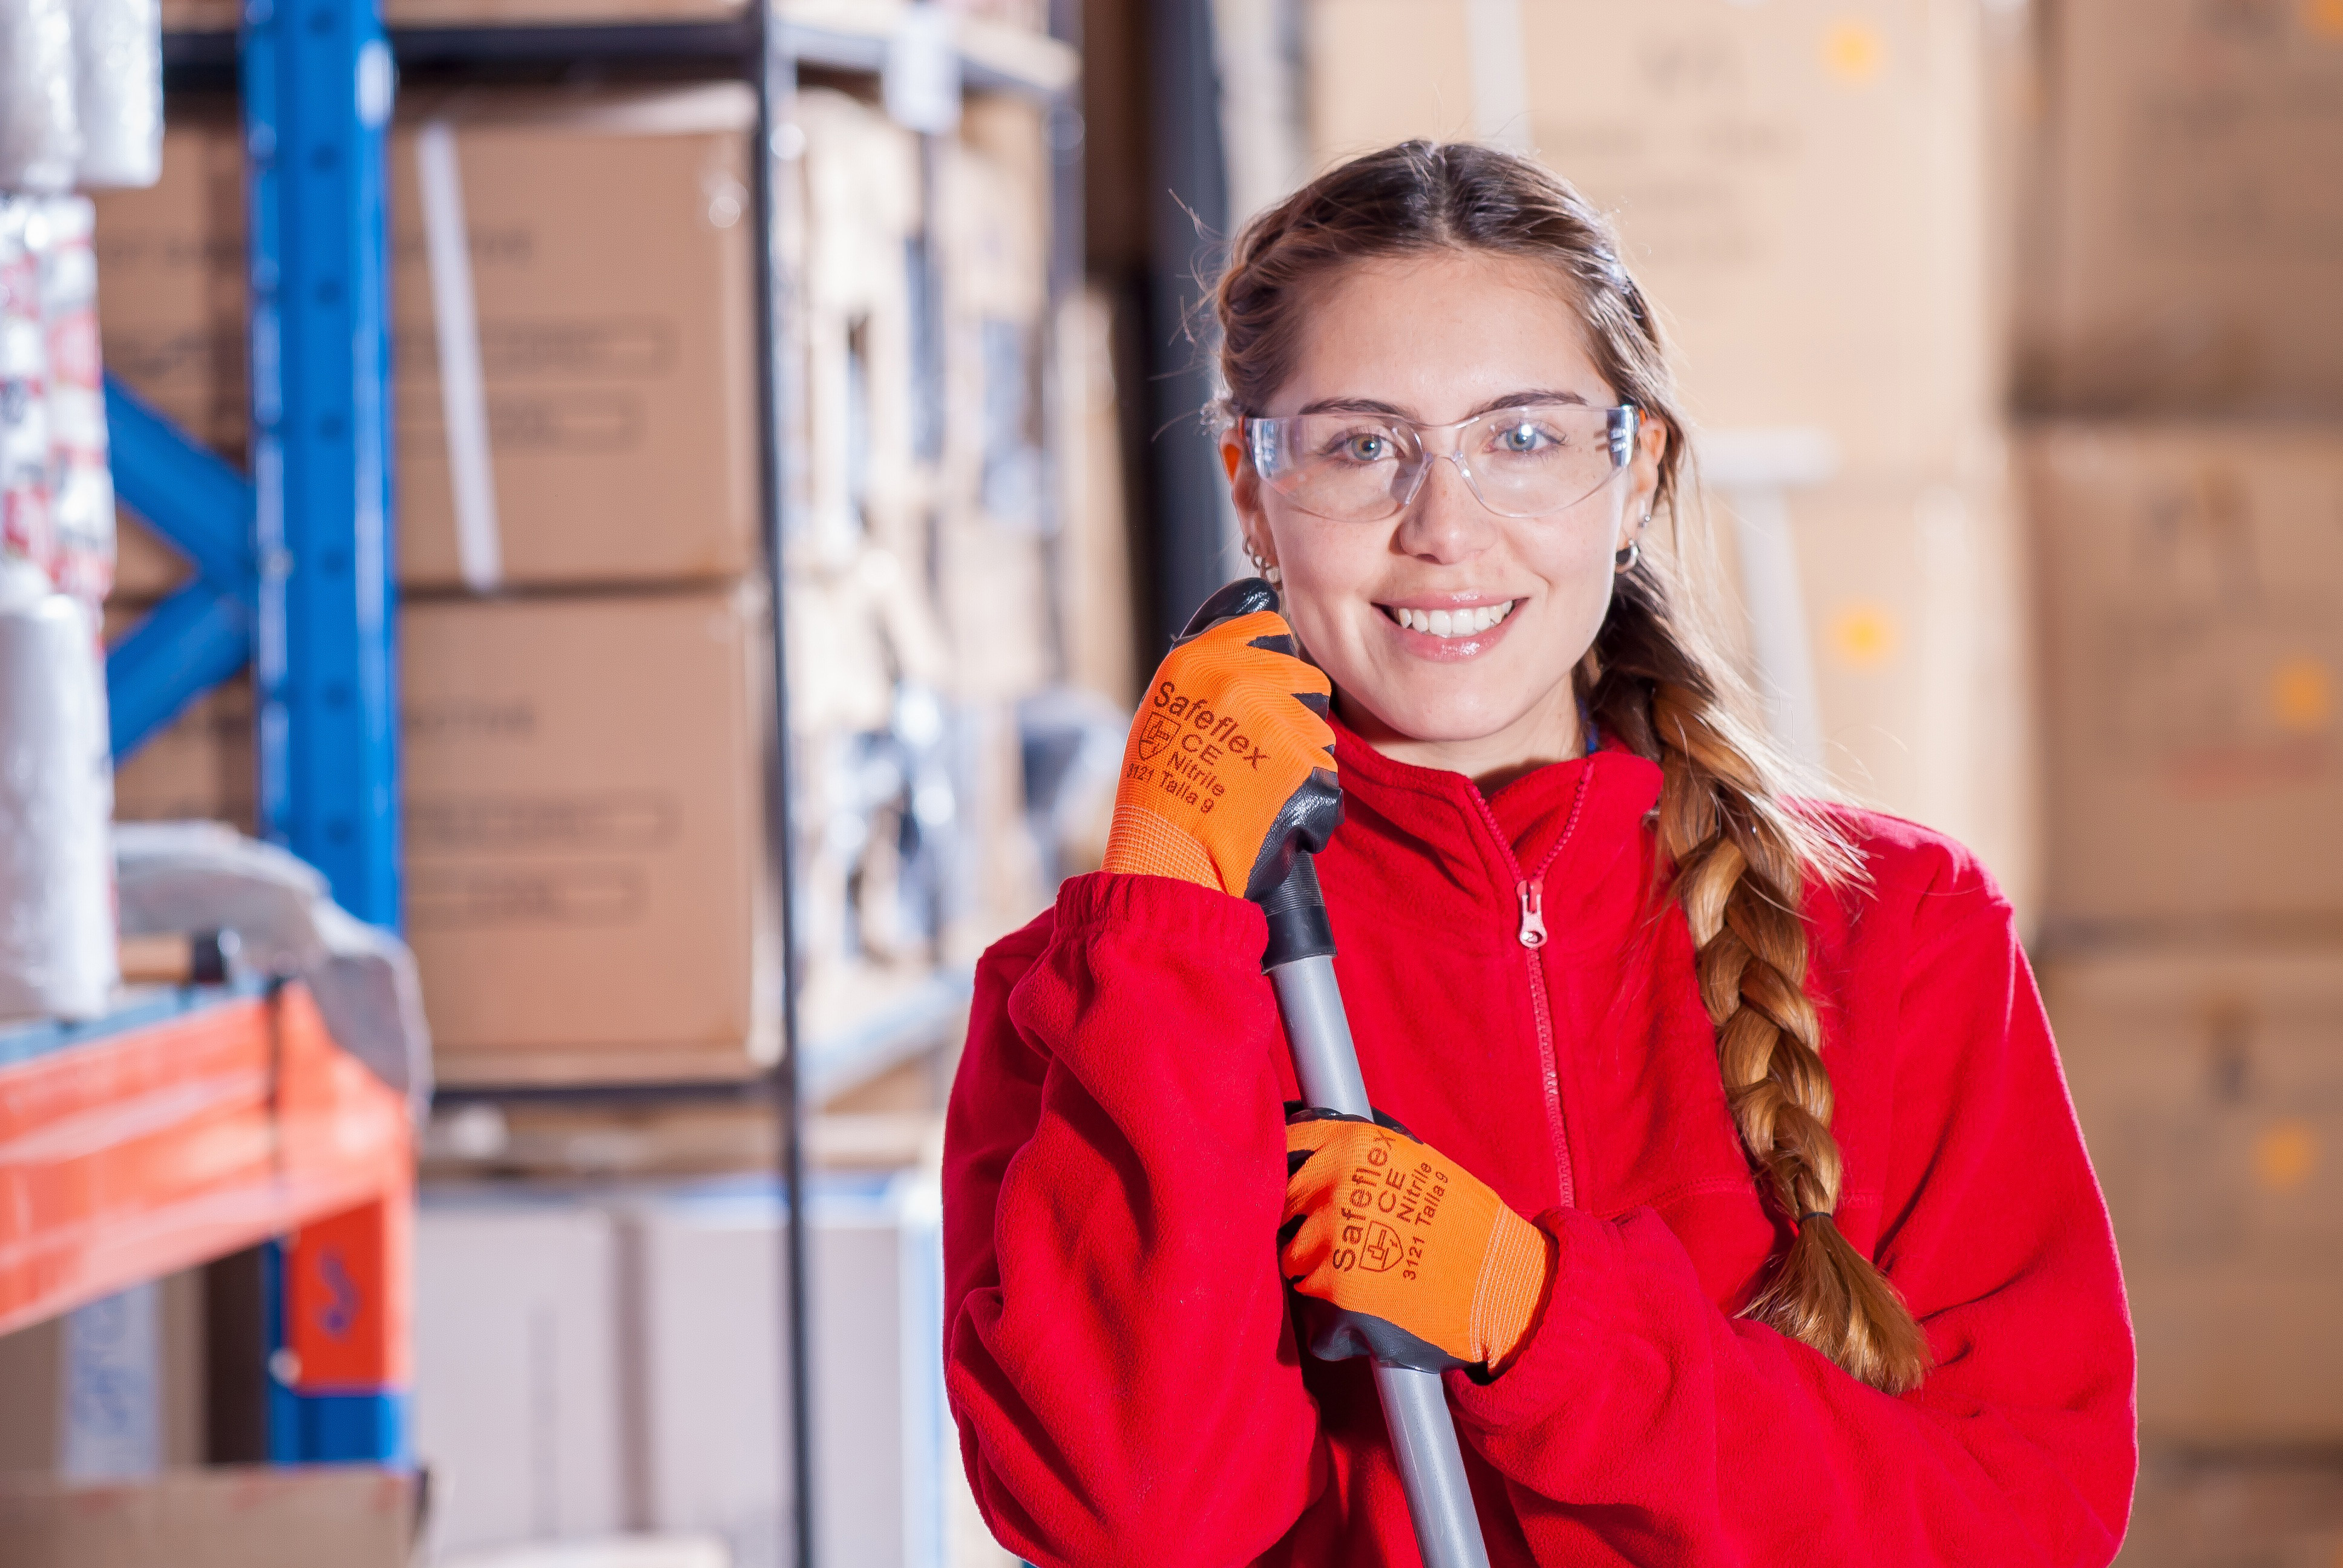 Free stock photo of female warehouse worker public domain photo free stock photo of female warehouse worker photo by voltamax sciox Choice Image